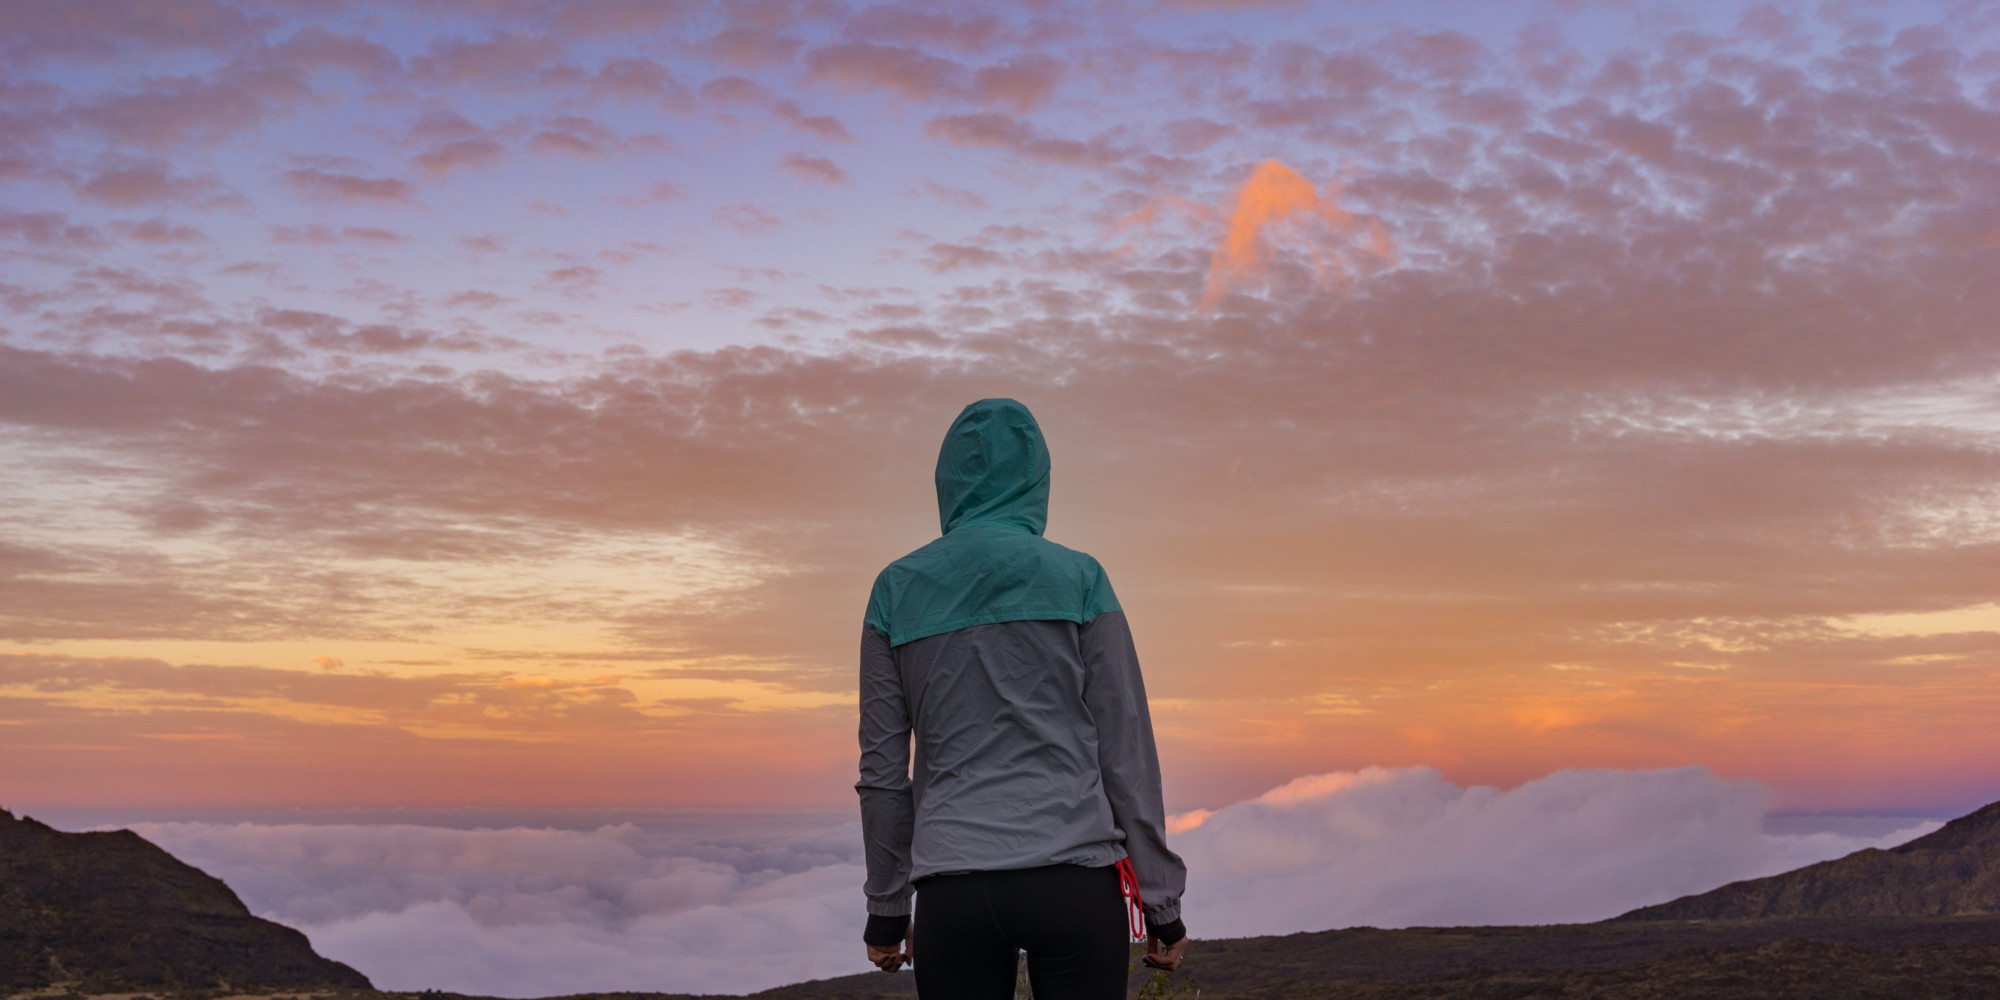 ed_young-woman-standing-on-a-mountain-looking-over-the-clouds